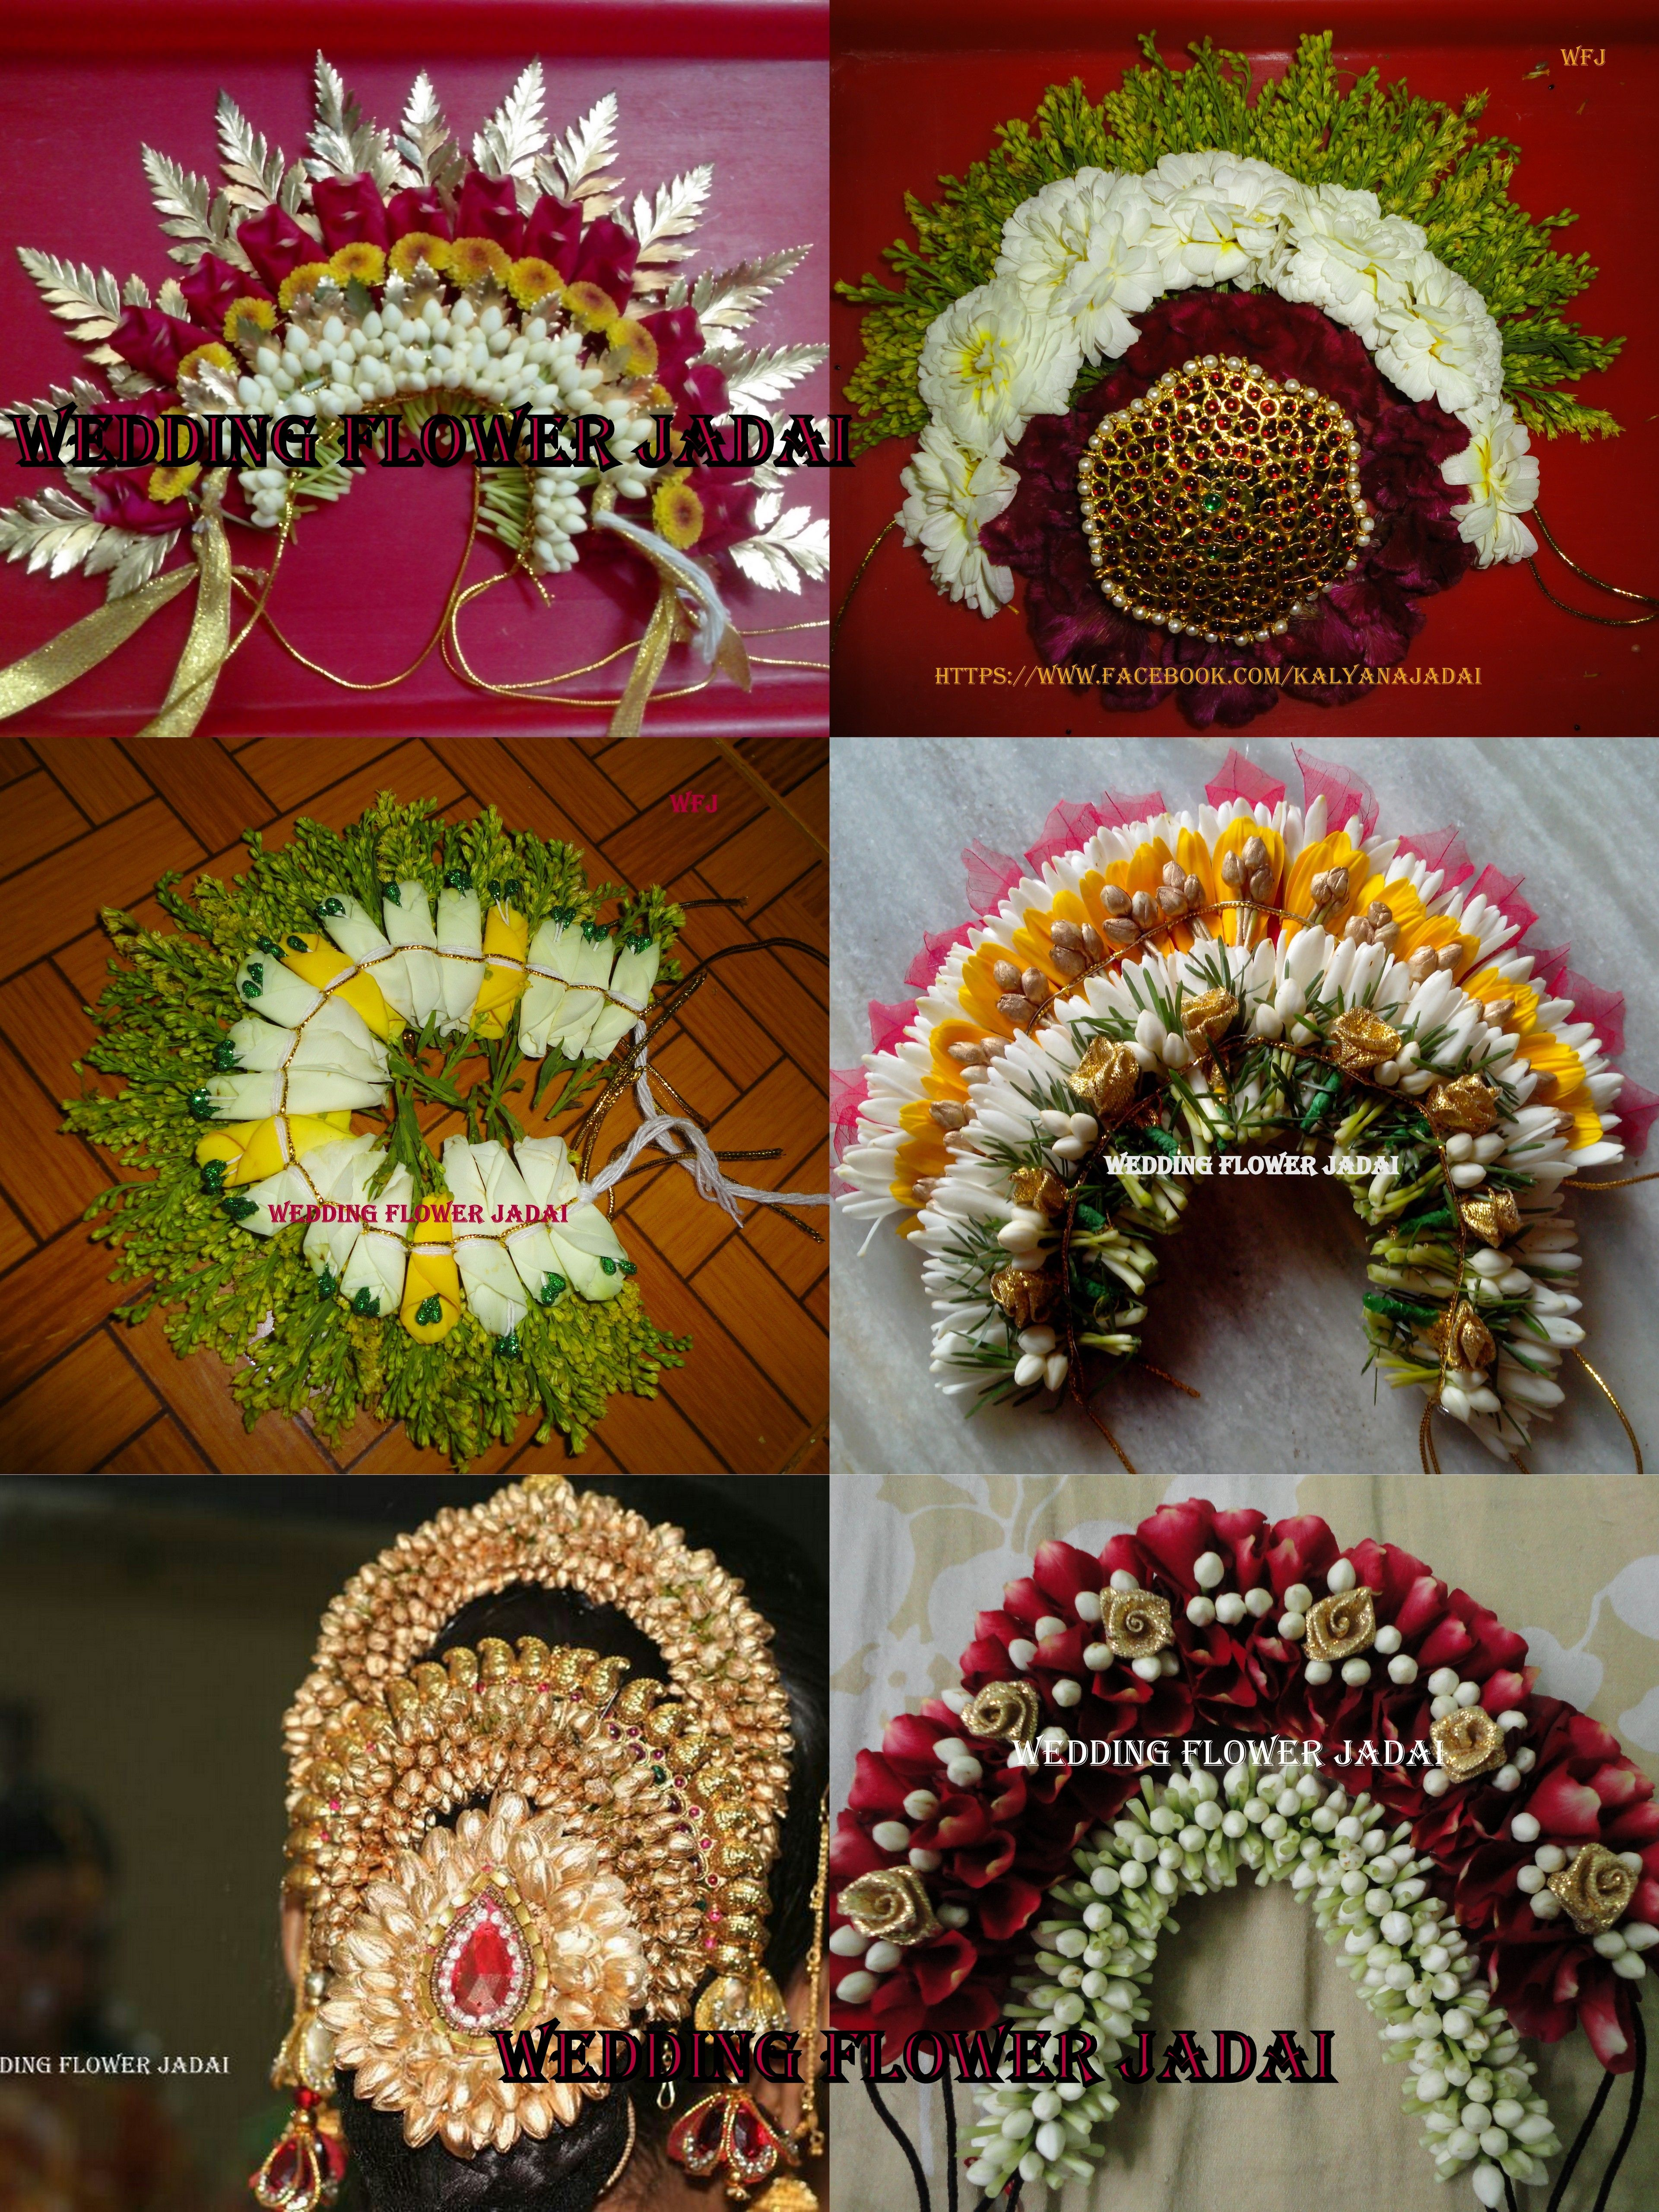 Bridal Flower Making Images : Wedding flower jadai veni collections